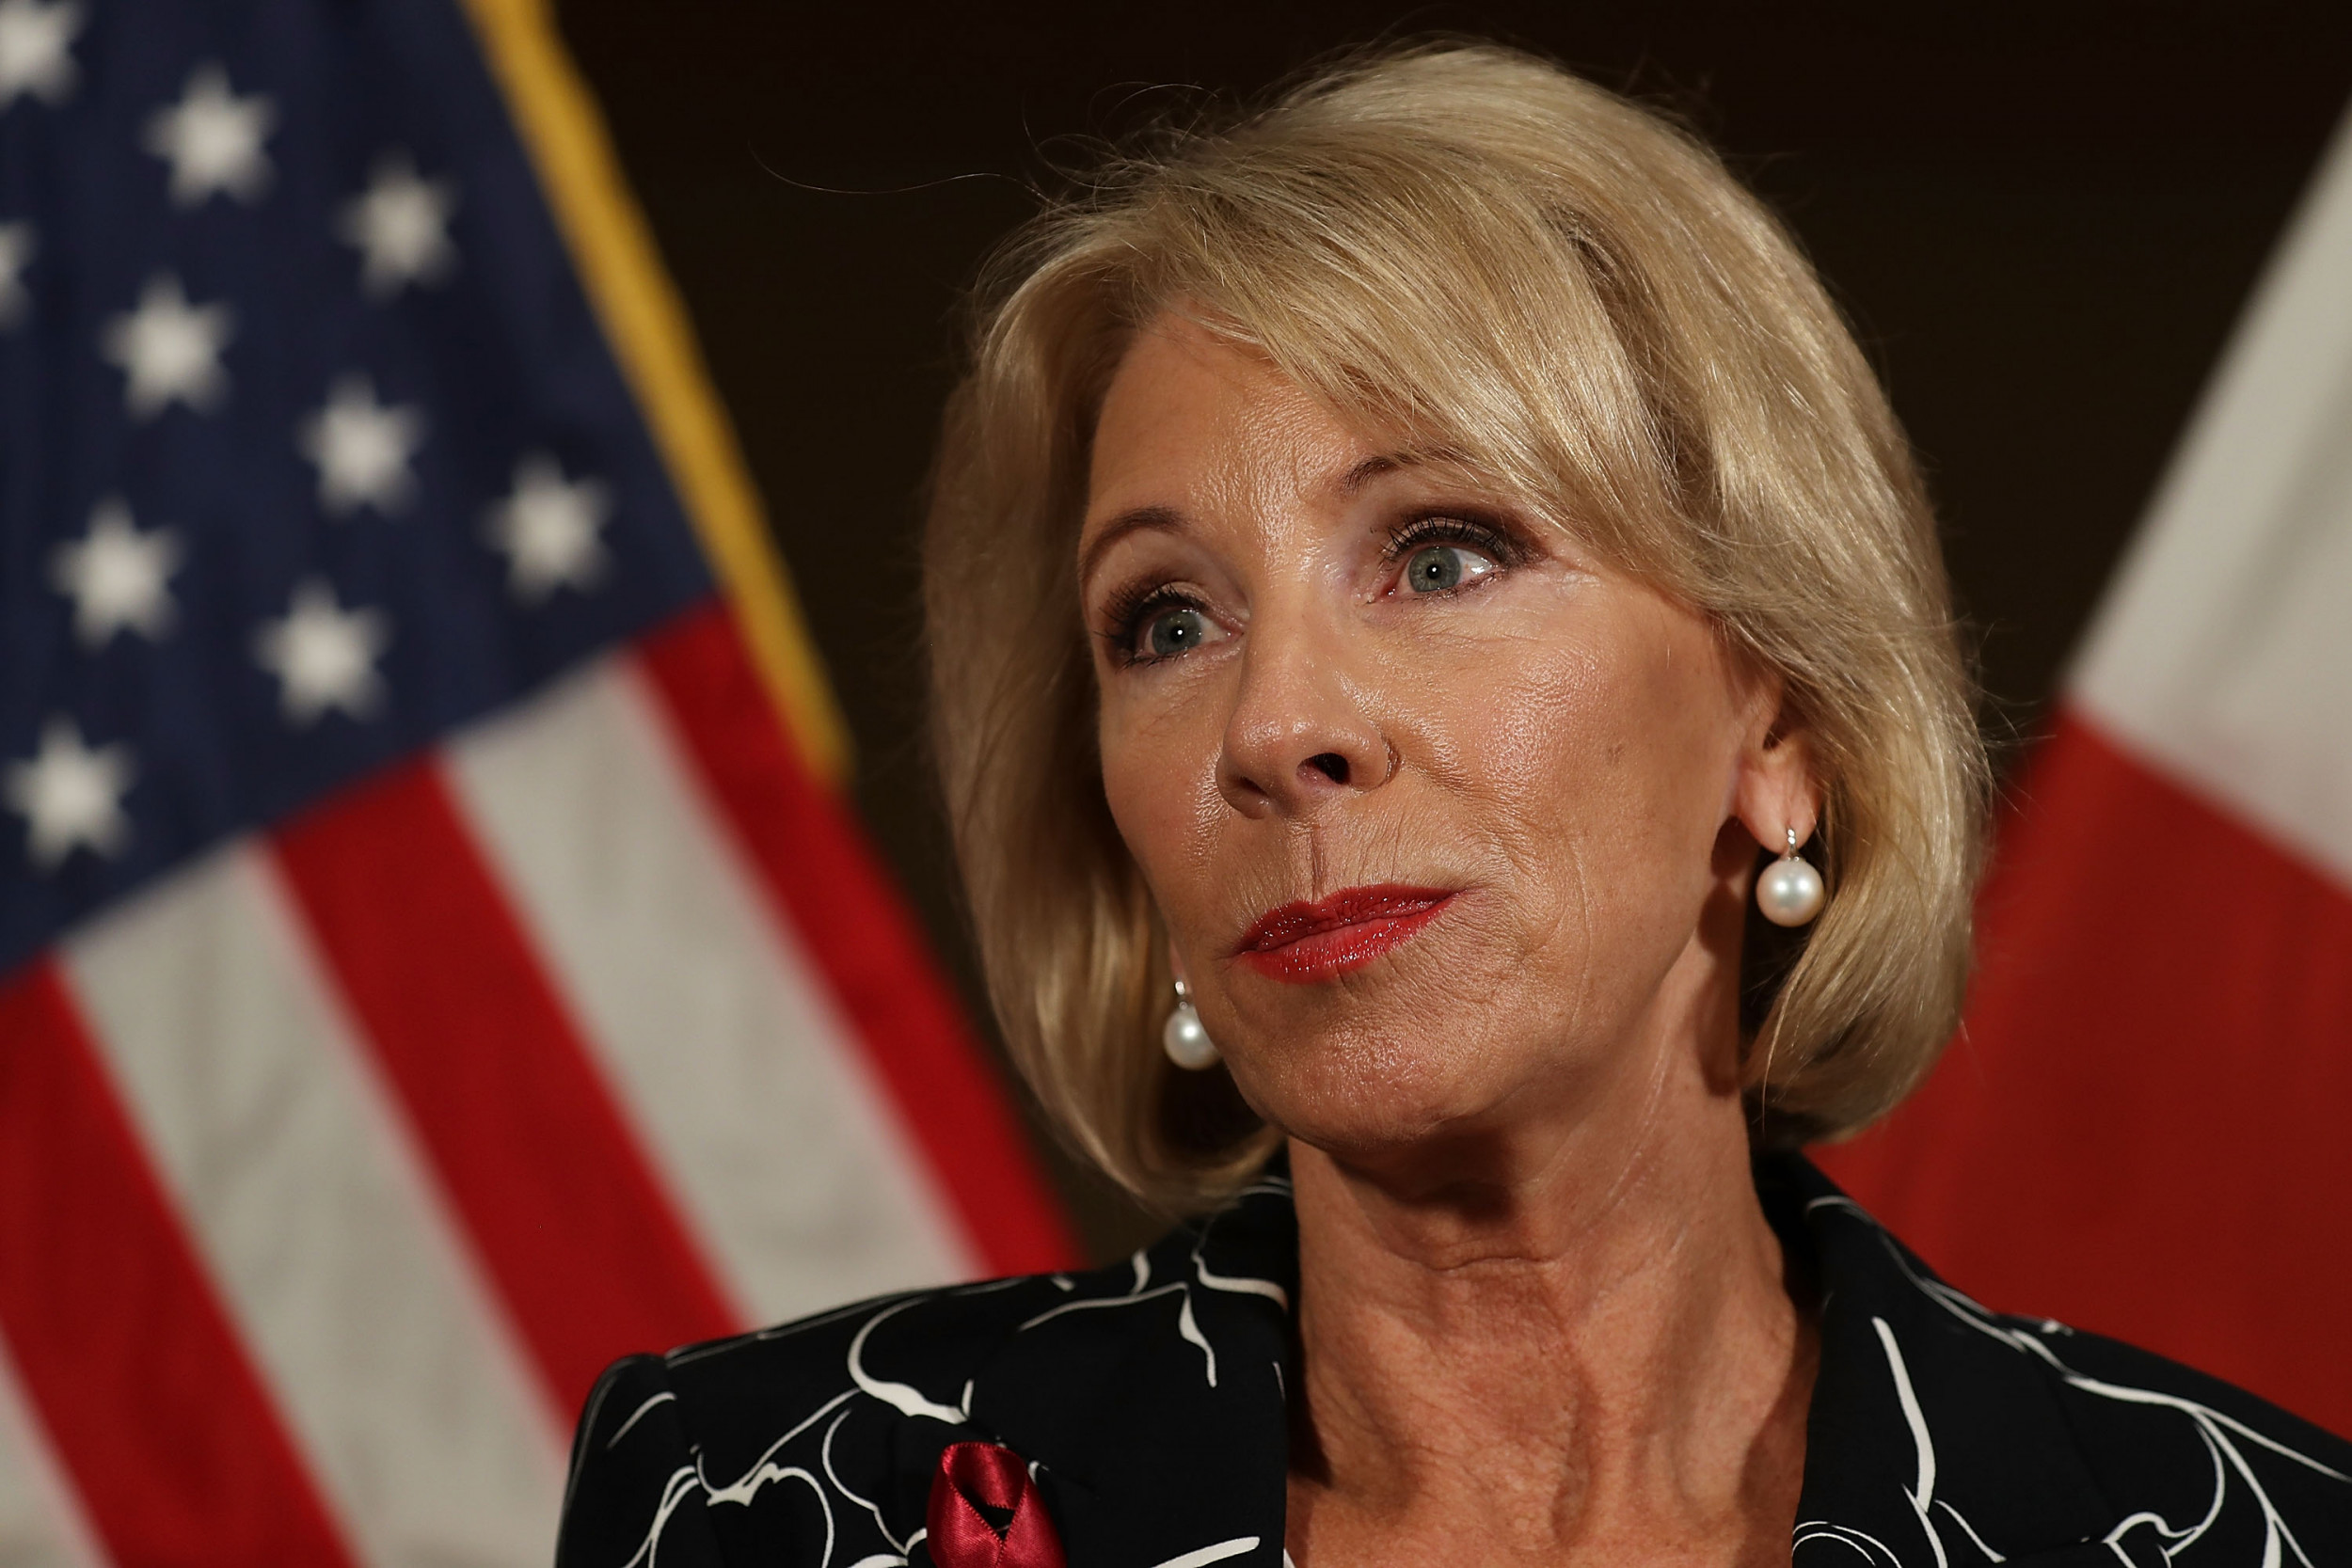 DeVos Claims Incoming FBI Agents Don't 'Really Know' What Happened on 9/11 - Newsweek